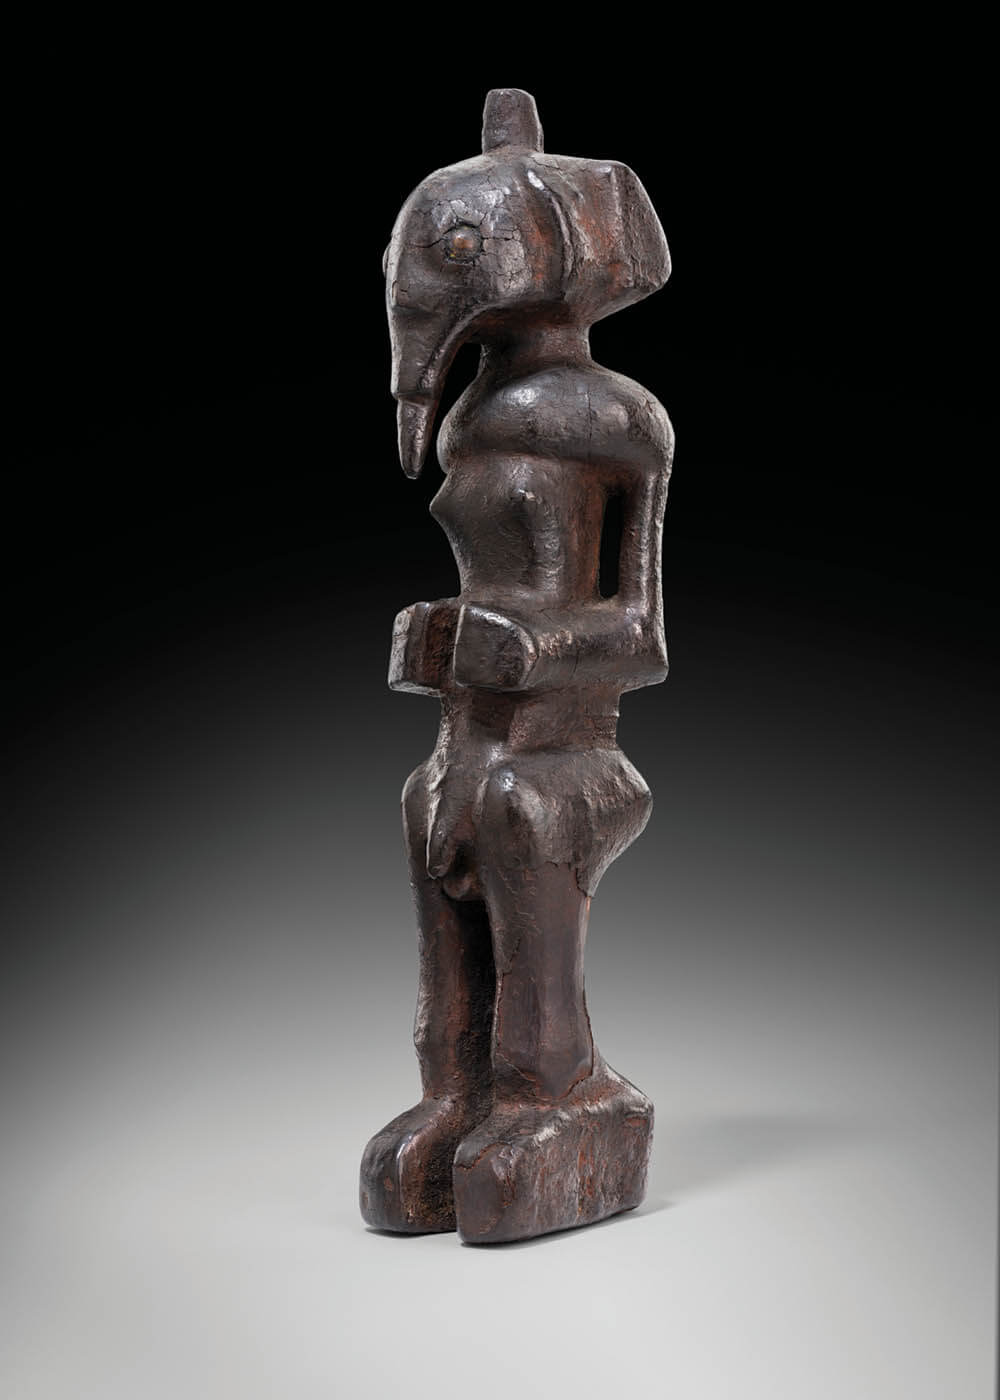 Manche de Hochet (Chokwe) D.R.Congo / Angola, wood, c. end of the 19th century to the beginning of the 20th century. Image courtesy of Fundação Sindika Dokolo.